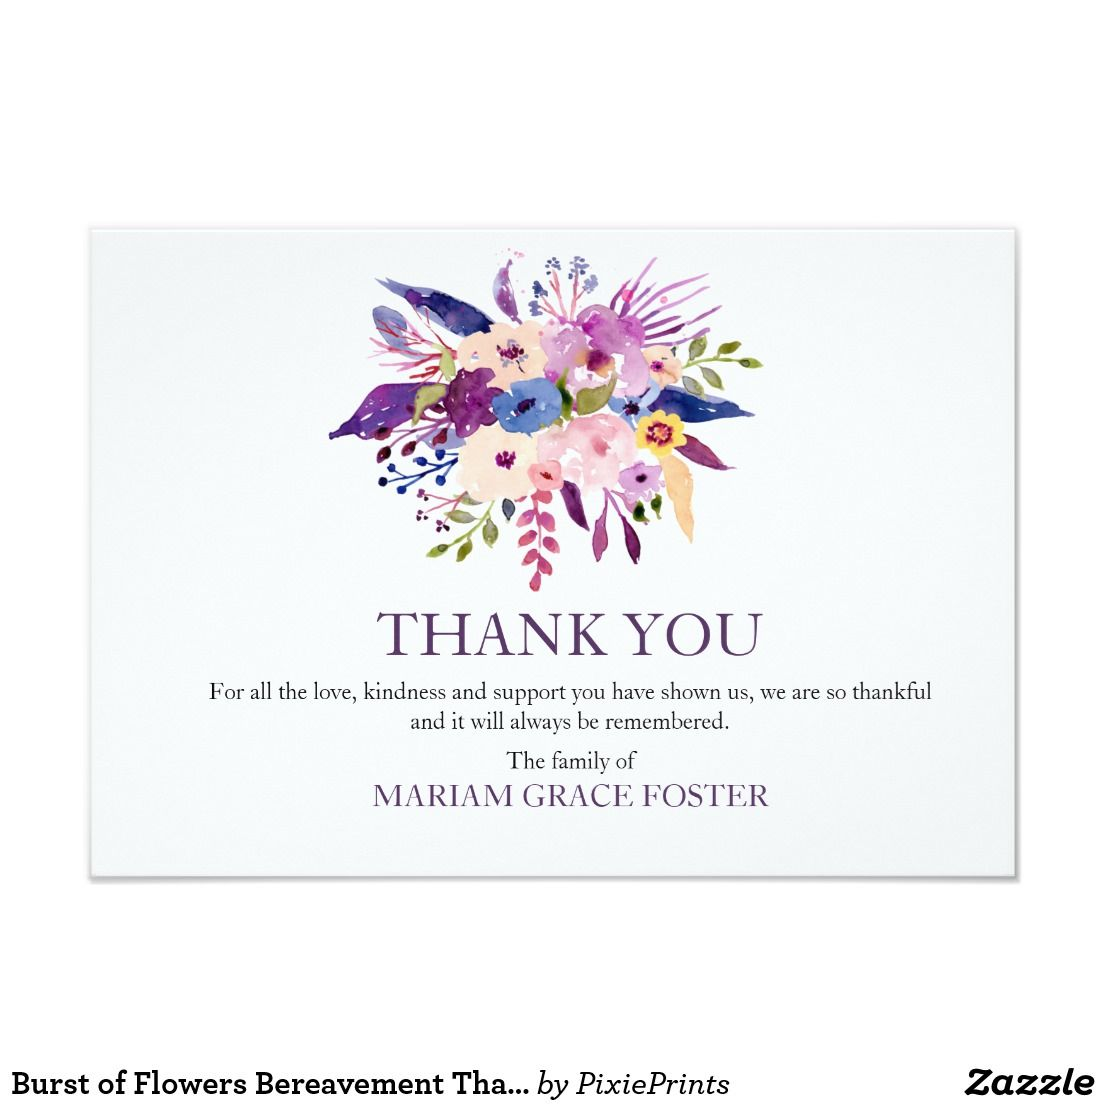 Burst Of Flowers Bereavement Thank You Card Zazzle Com With